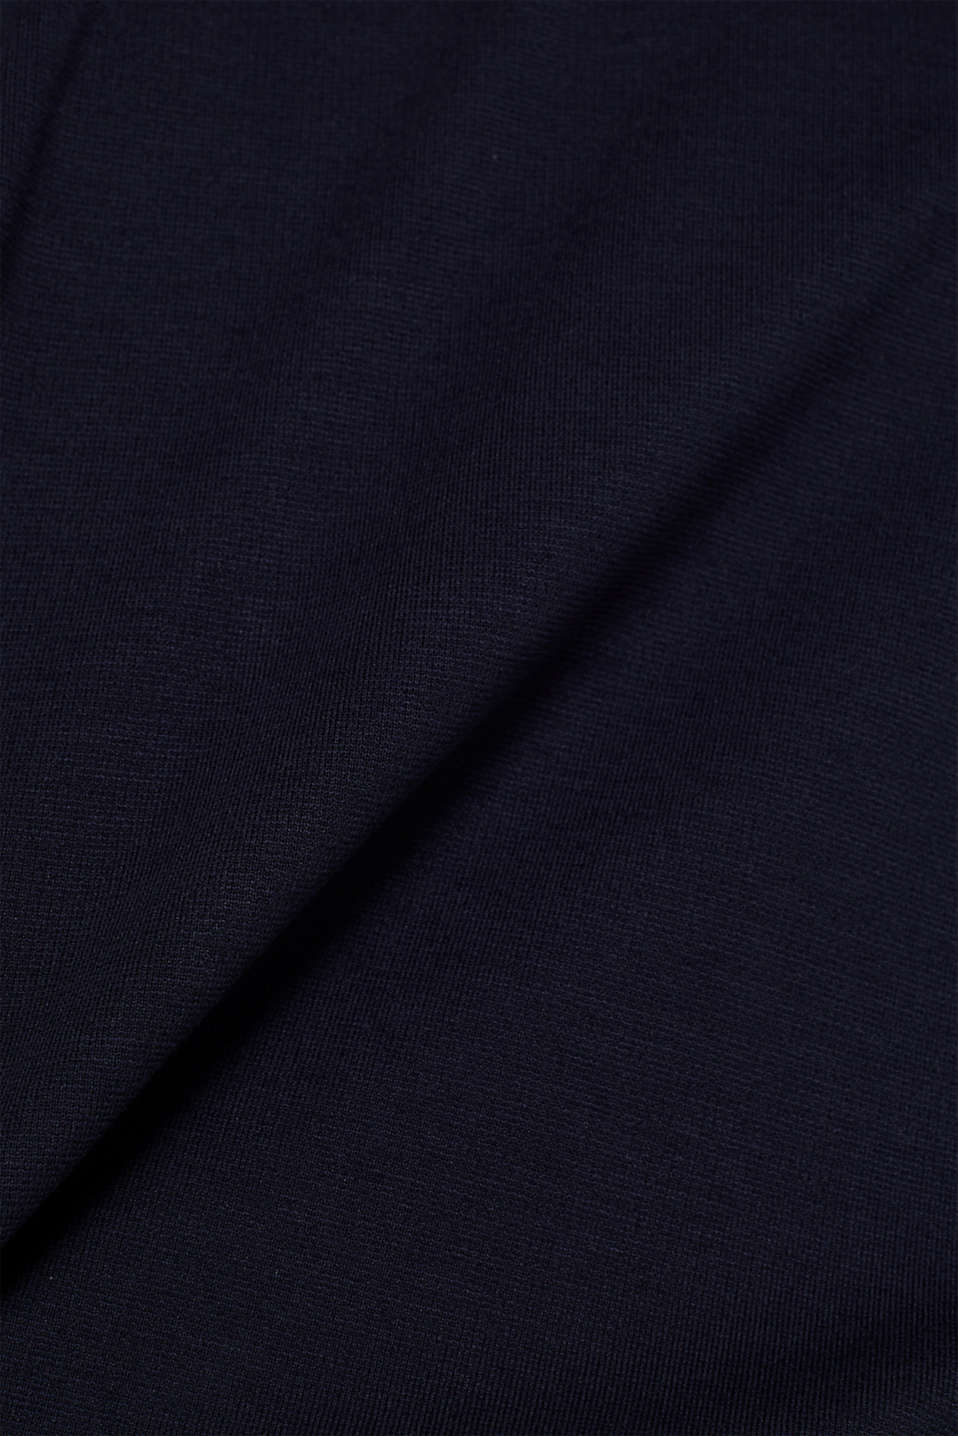 Stretch jersey dress in a layered look, NAVY, detail image number 4